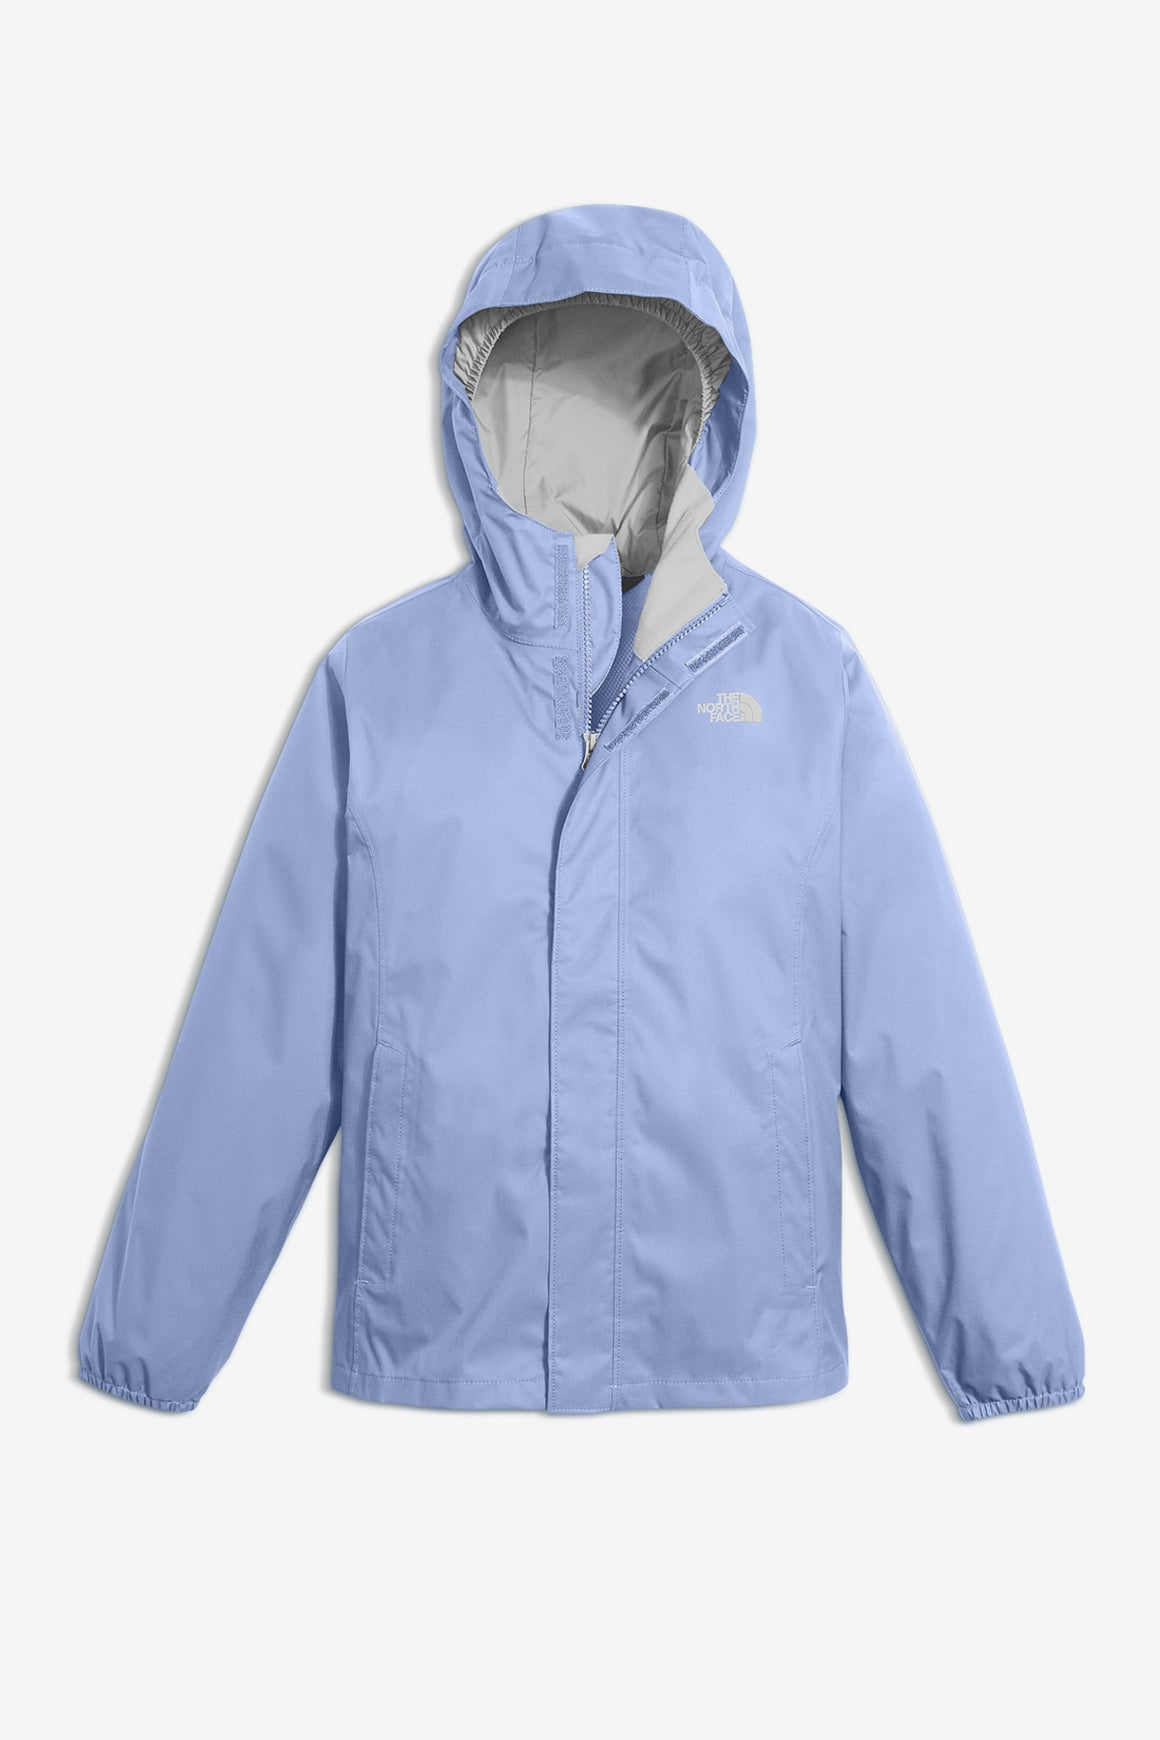 The North Face Girls' Resolve Reflective Rain Jacket - Lavender